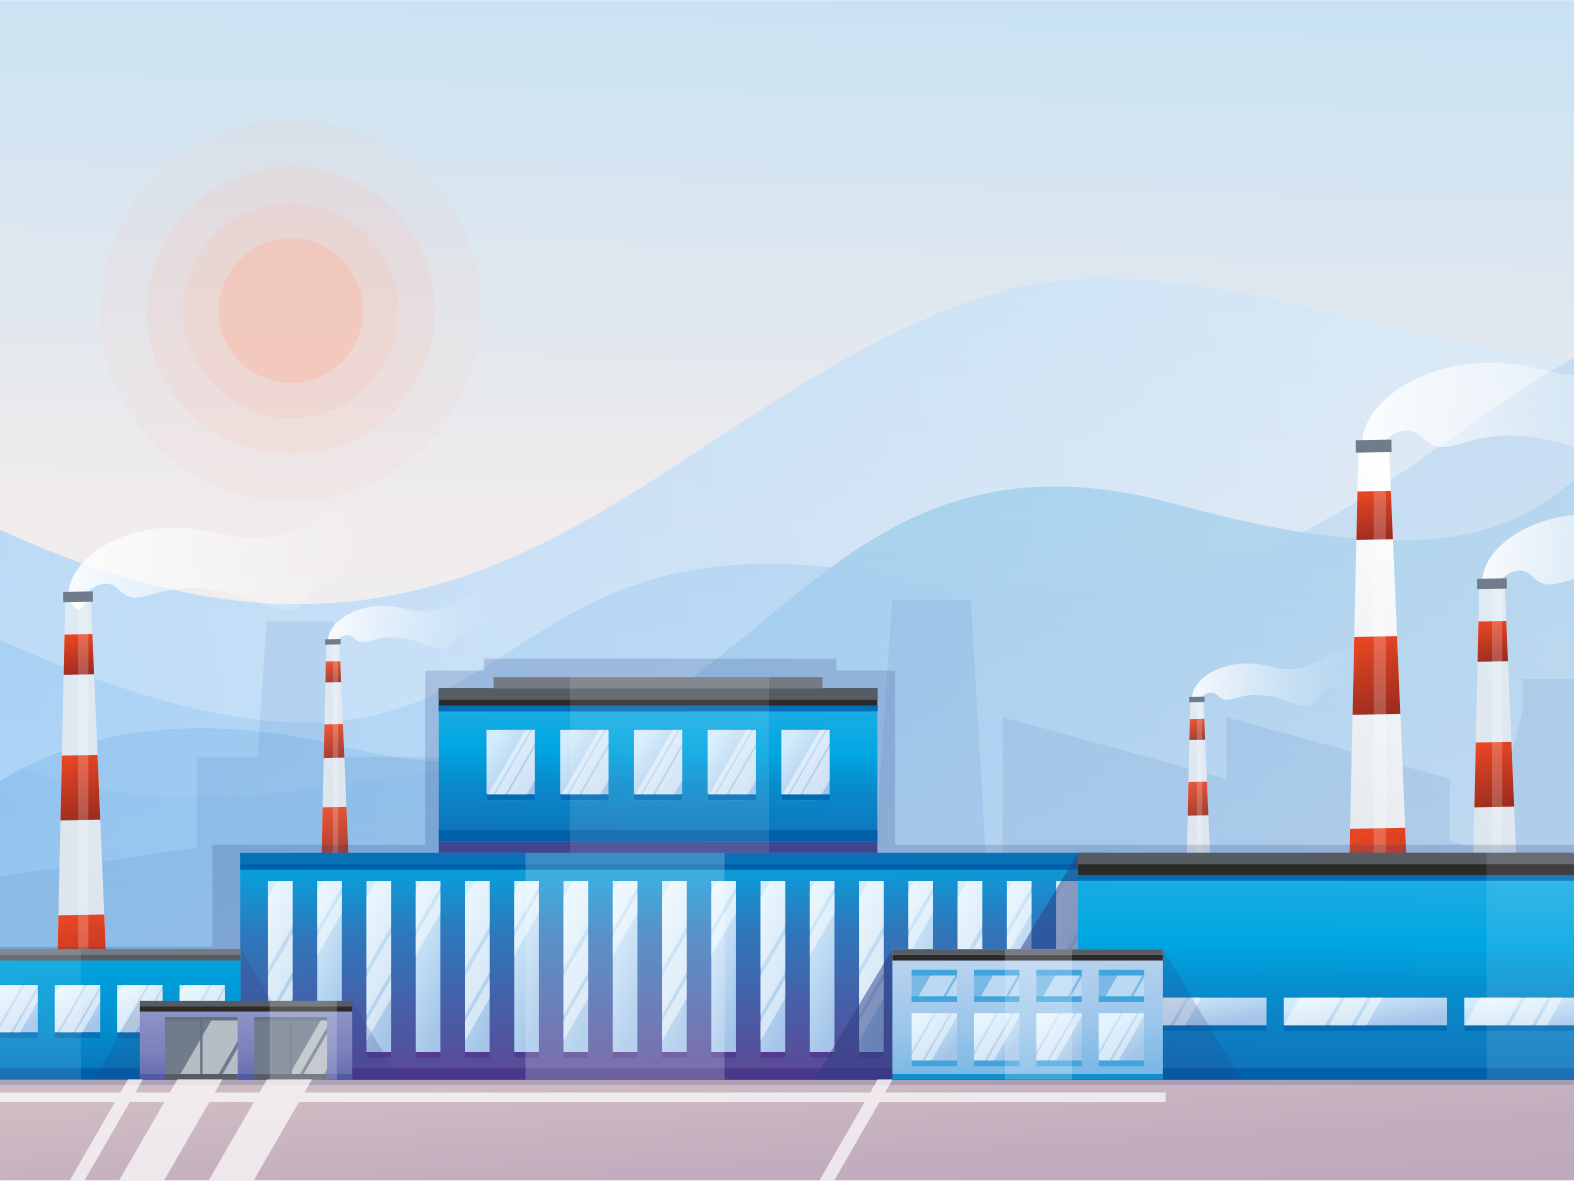 Factory plant works smoggy pipes smog illustration vecor industrialdesign industrial factory